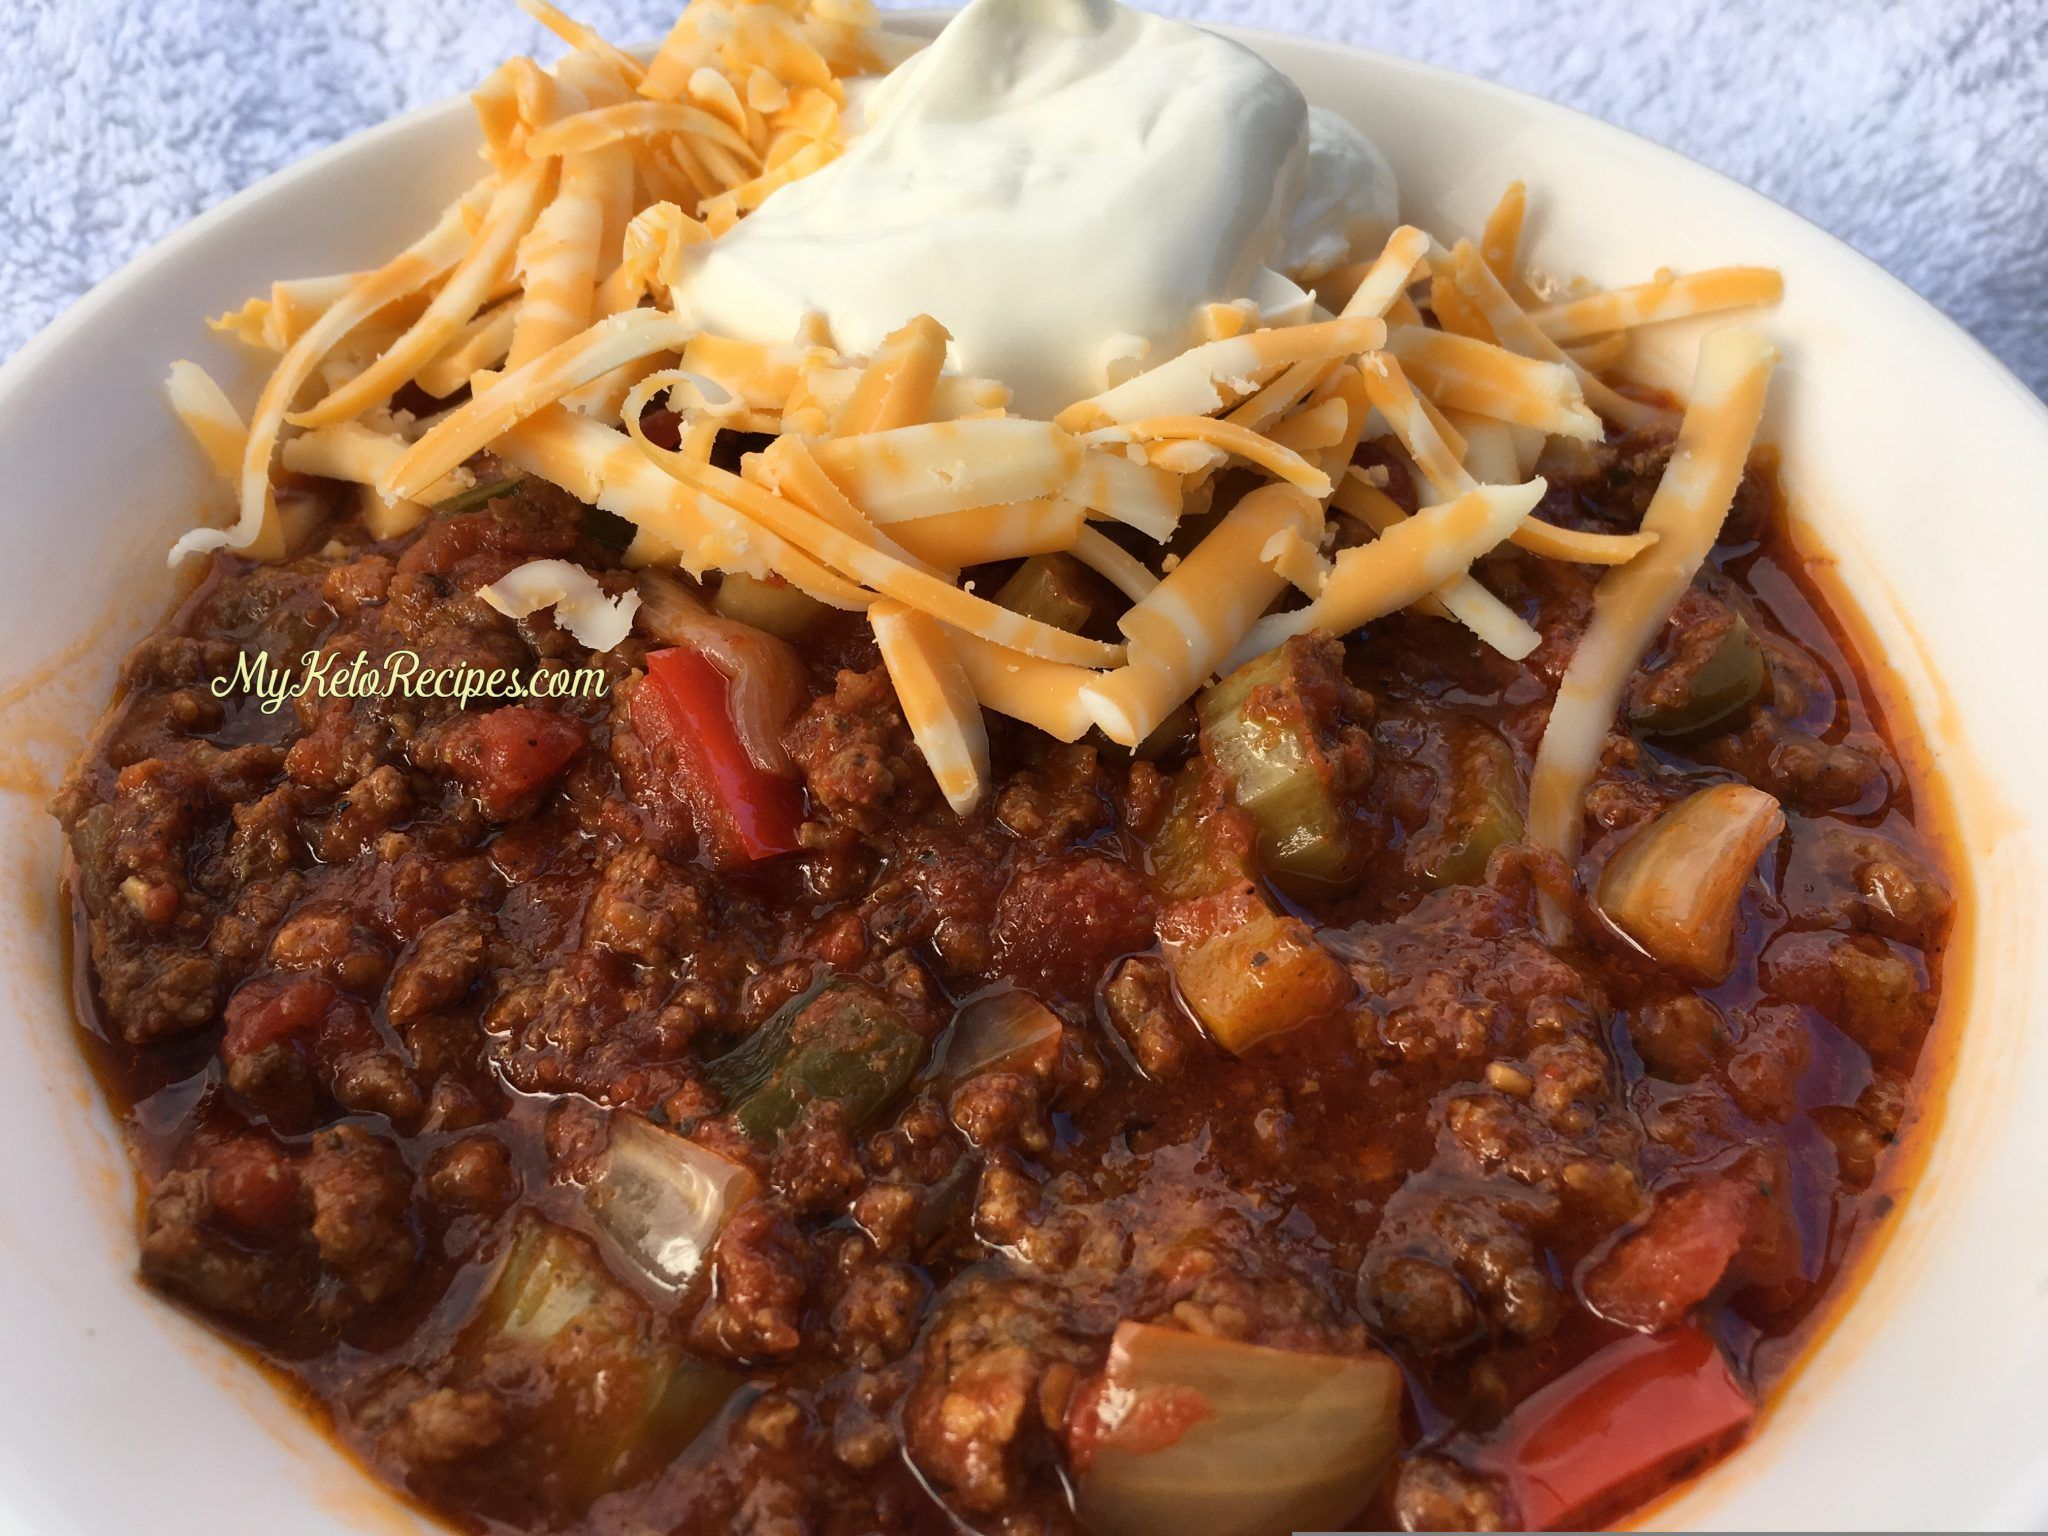 Keto Approved Chili Low Carb Recipe Keto Recipes Easy Low Carb Keto Keto Cooking